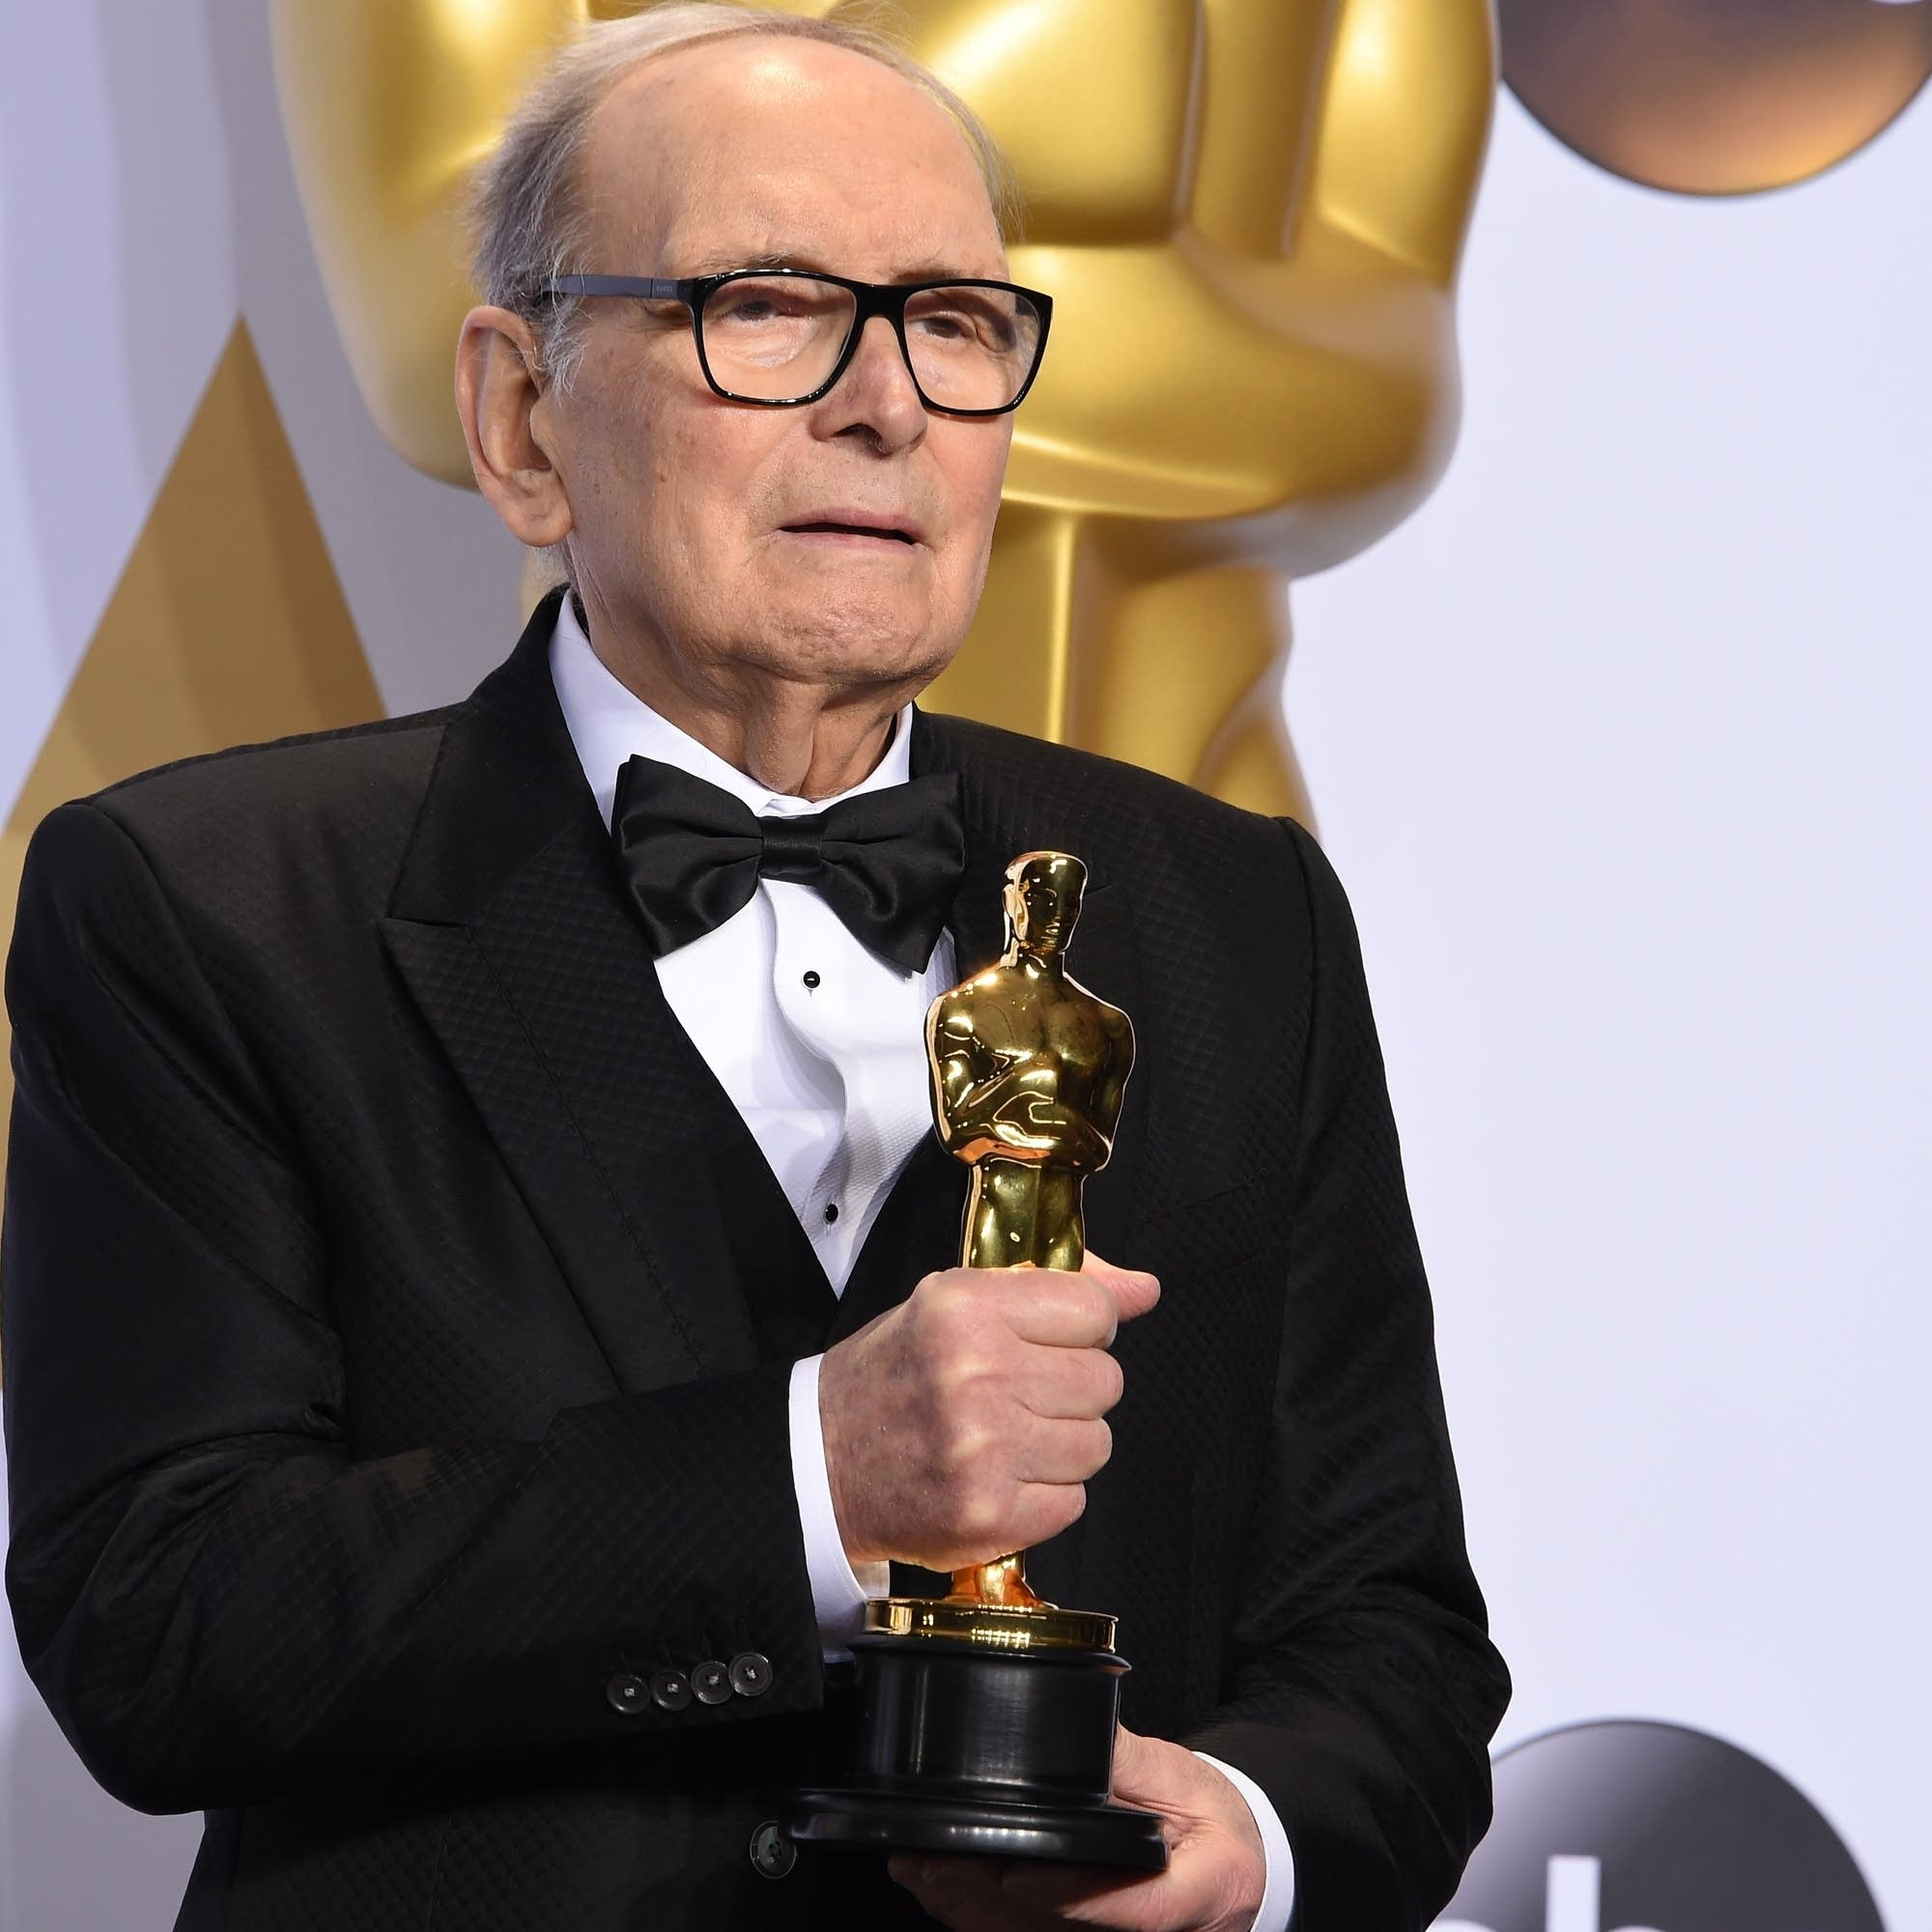 Ennio Morricone at the Oscars in 2016.